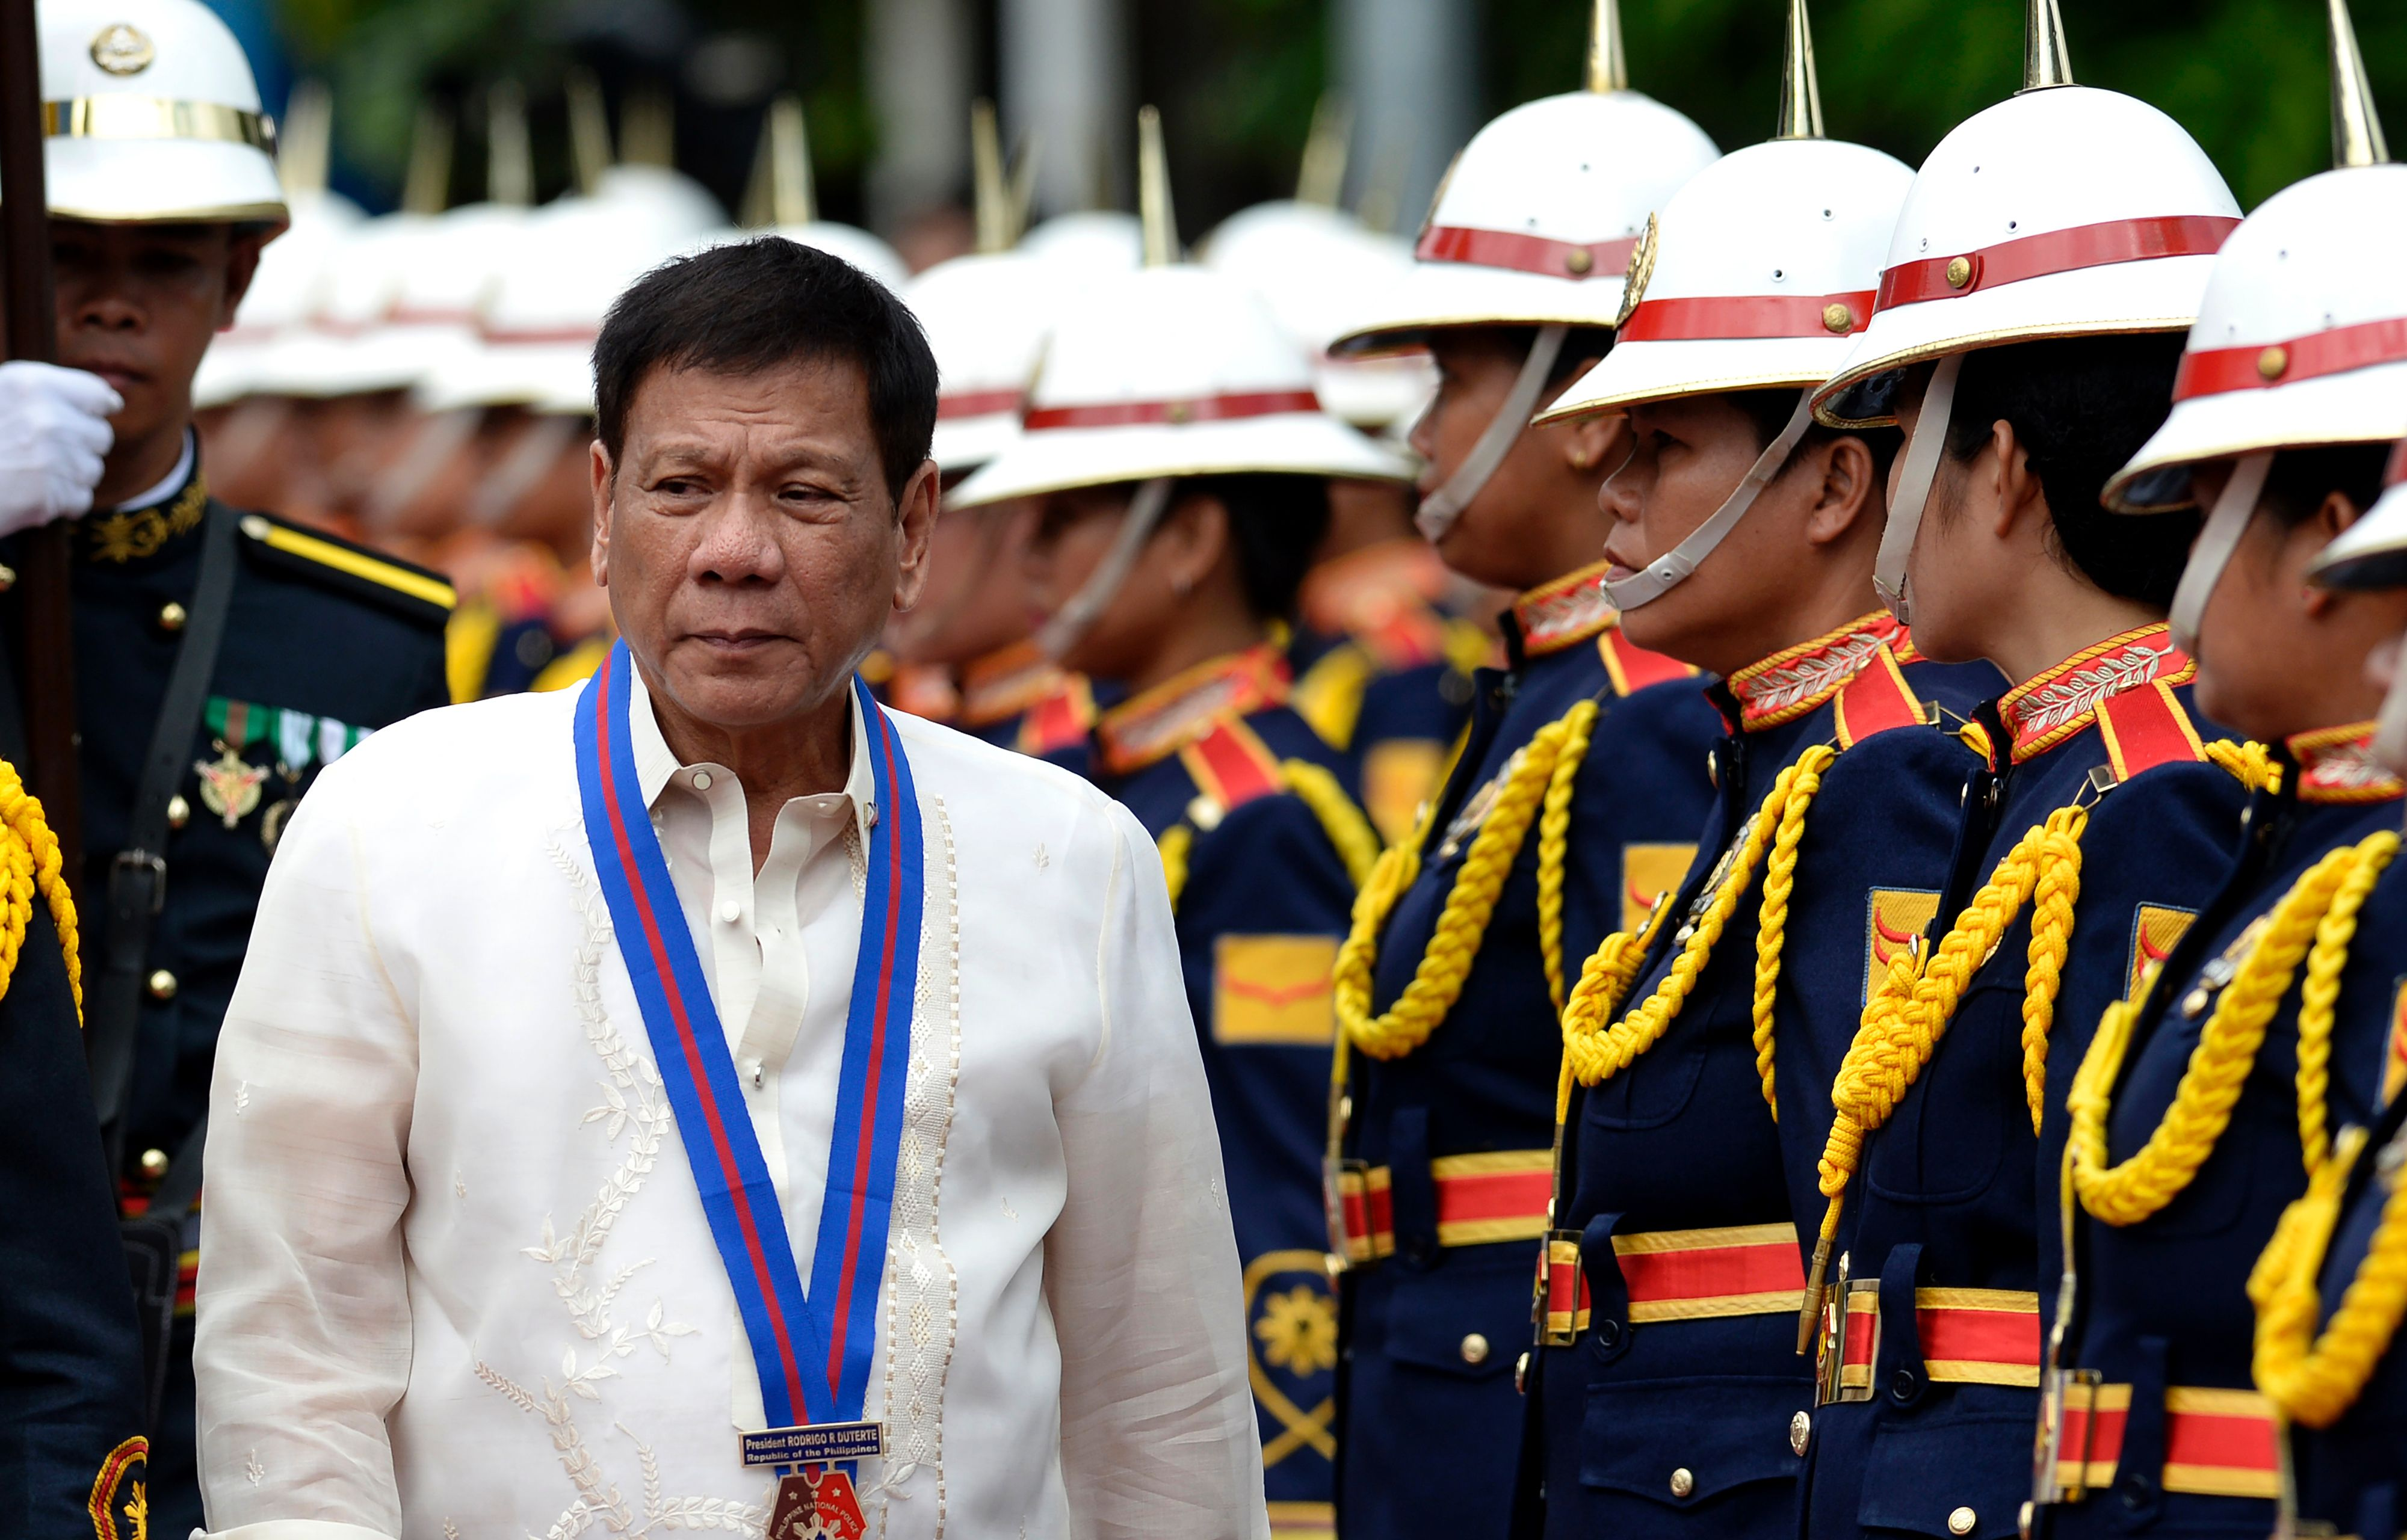 Philippine President Rodrigo Duterte walks past honour guards before Philippine National Police (PNP) chief Ronald Bato Dela Rosa's Assumption of Command Ceremony at the Camp Crame in Manila on July 1, 2016.  Authoritarian firebrand Rodrigo Duterte was sworn in as the Philippines' president on June 30, after promising a ruthless and deeply controversial war on crime would be the main focus of his six-year term. / AFP / NOEL CELIS        (Photo credit should read NOEL CELIS/AFP/Getty Images)